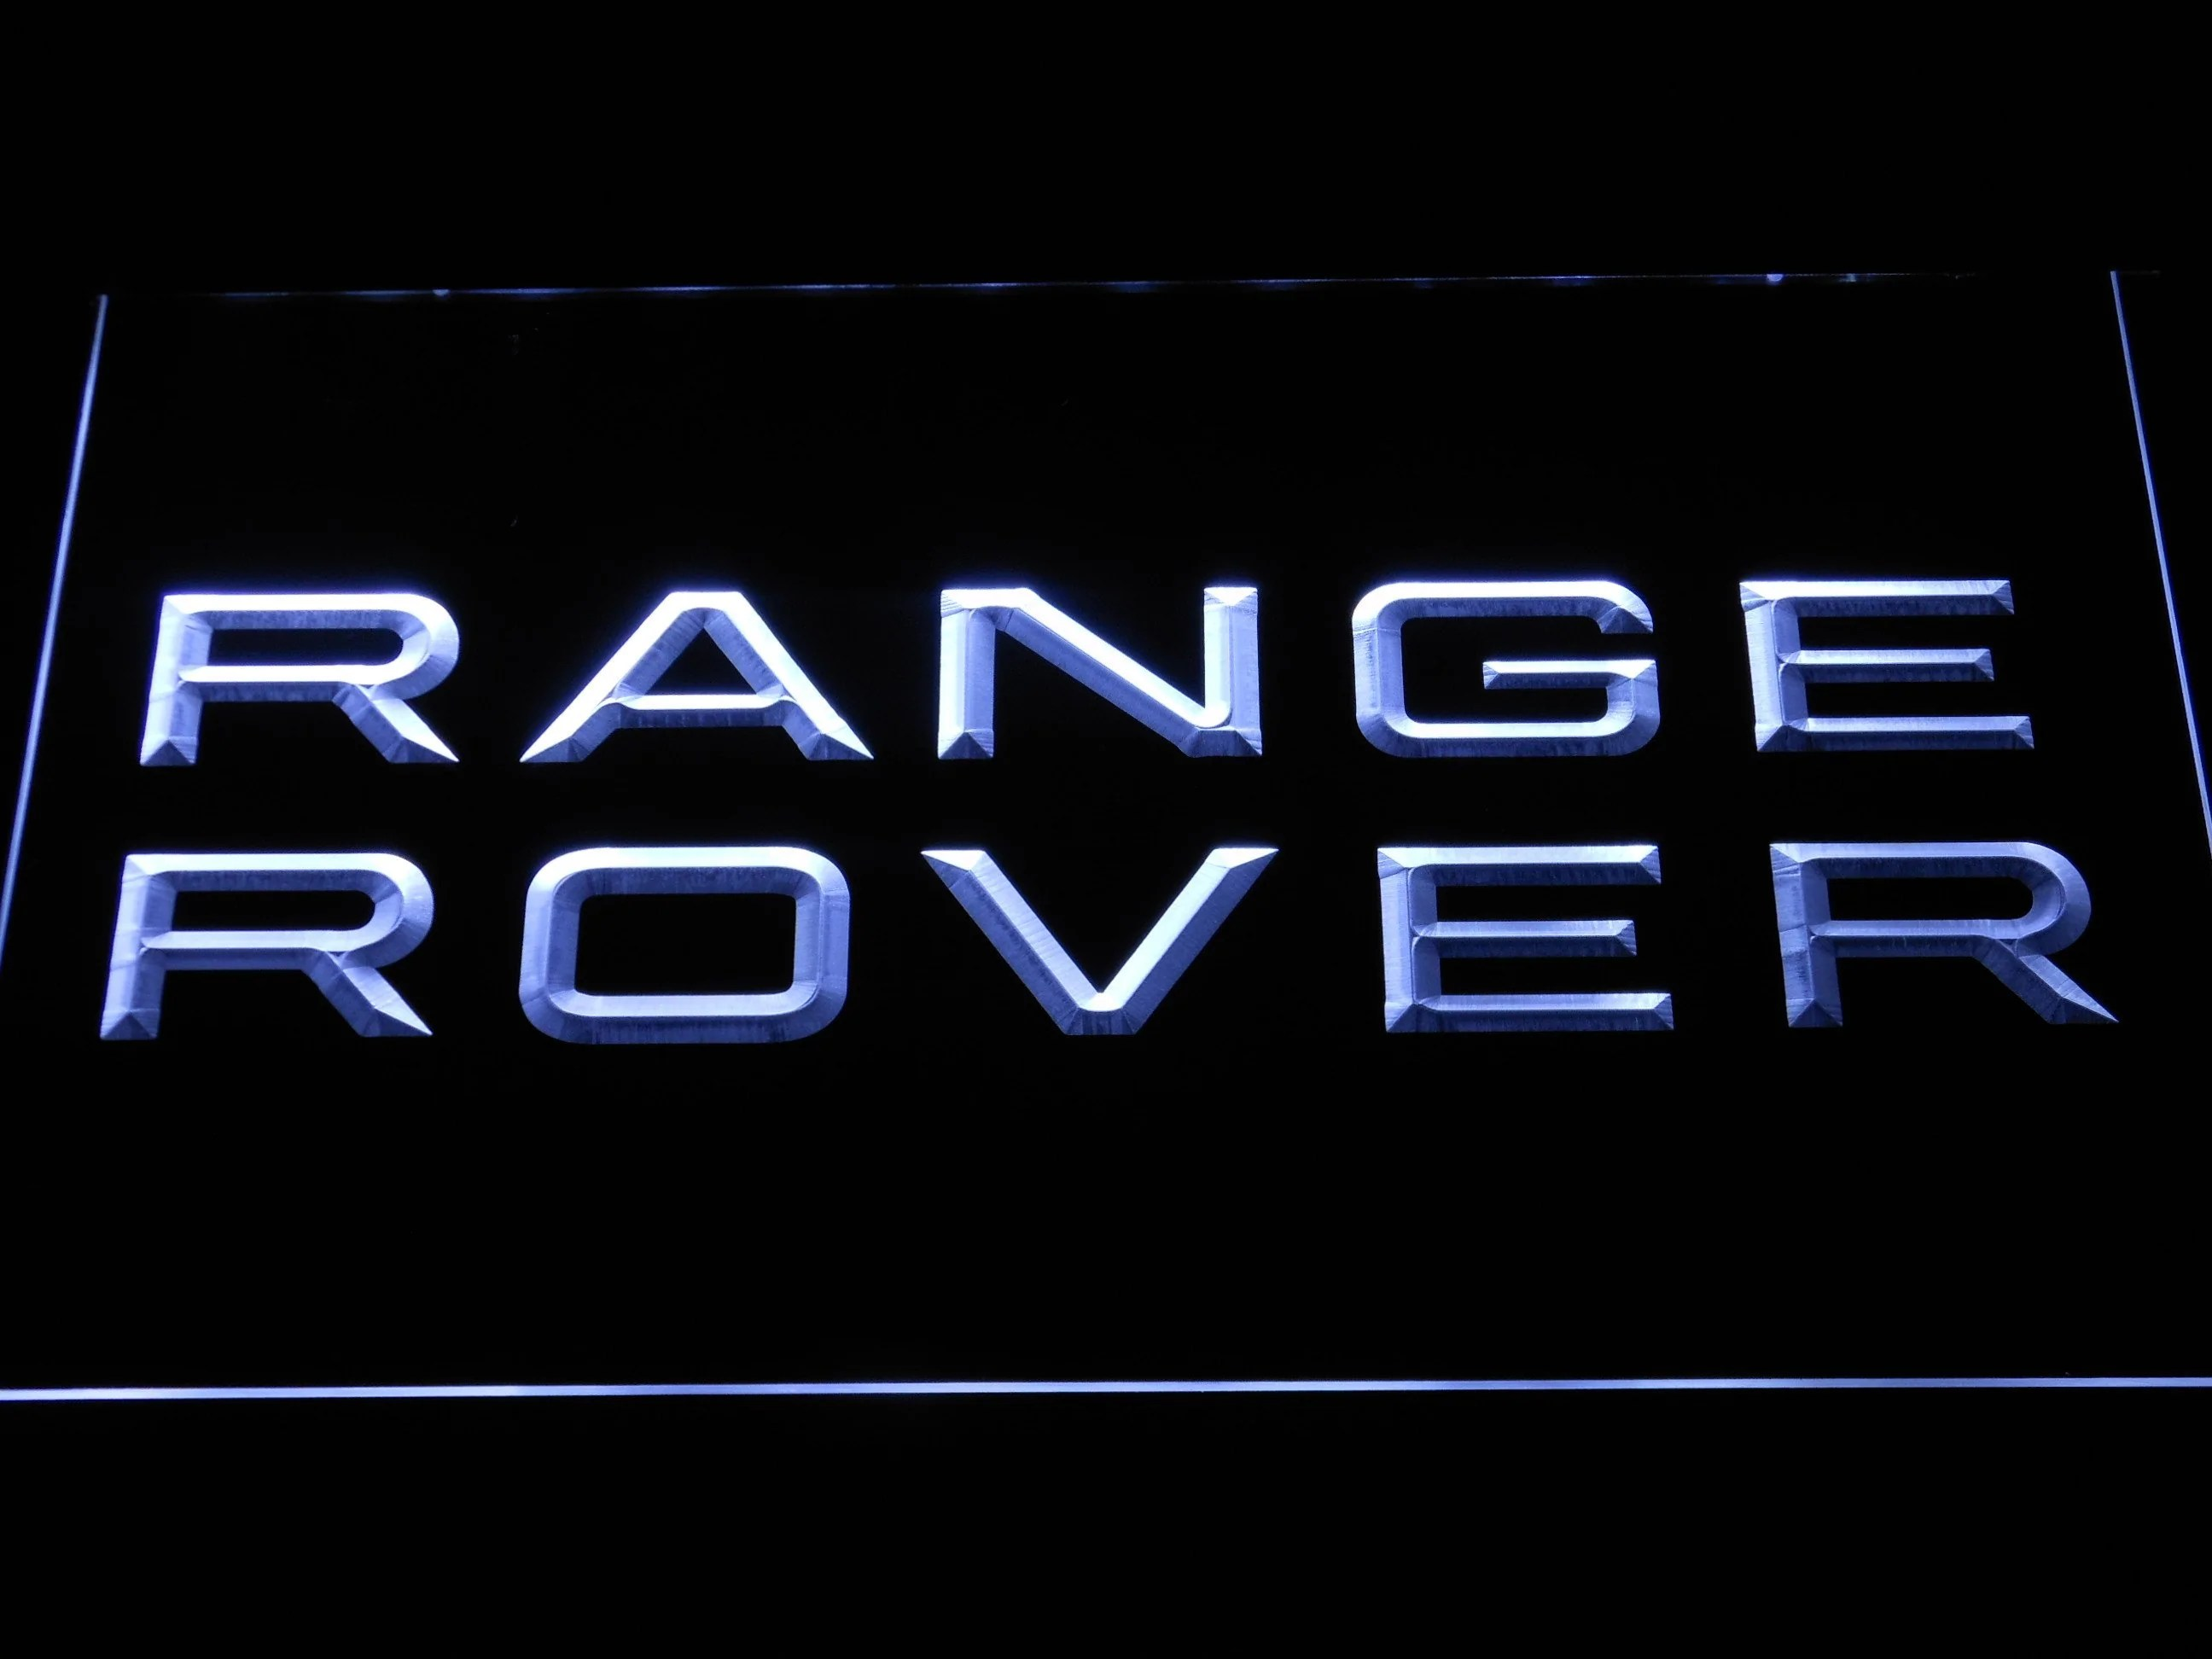 Land Rover Range Rover LED Neon Sign